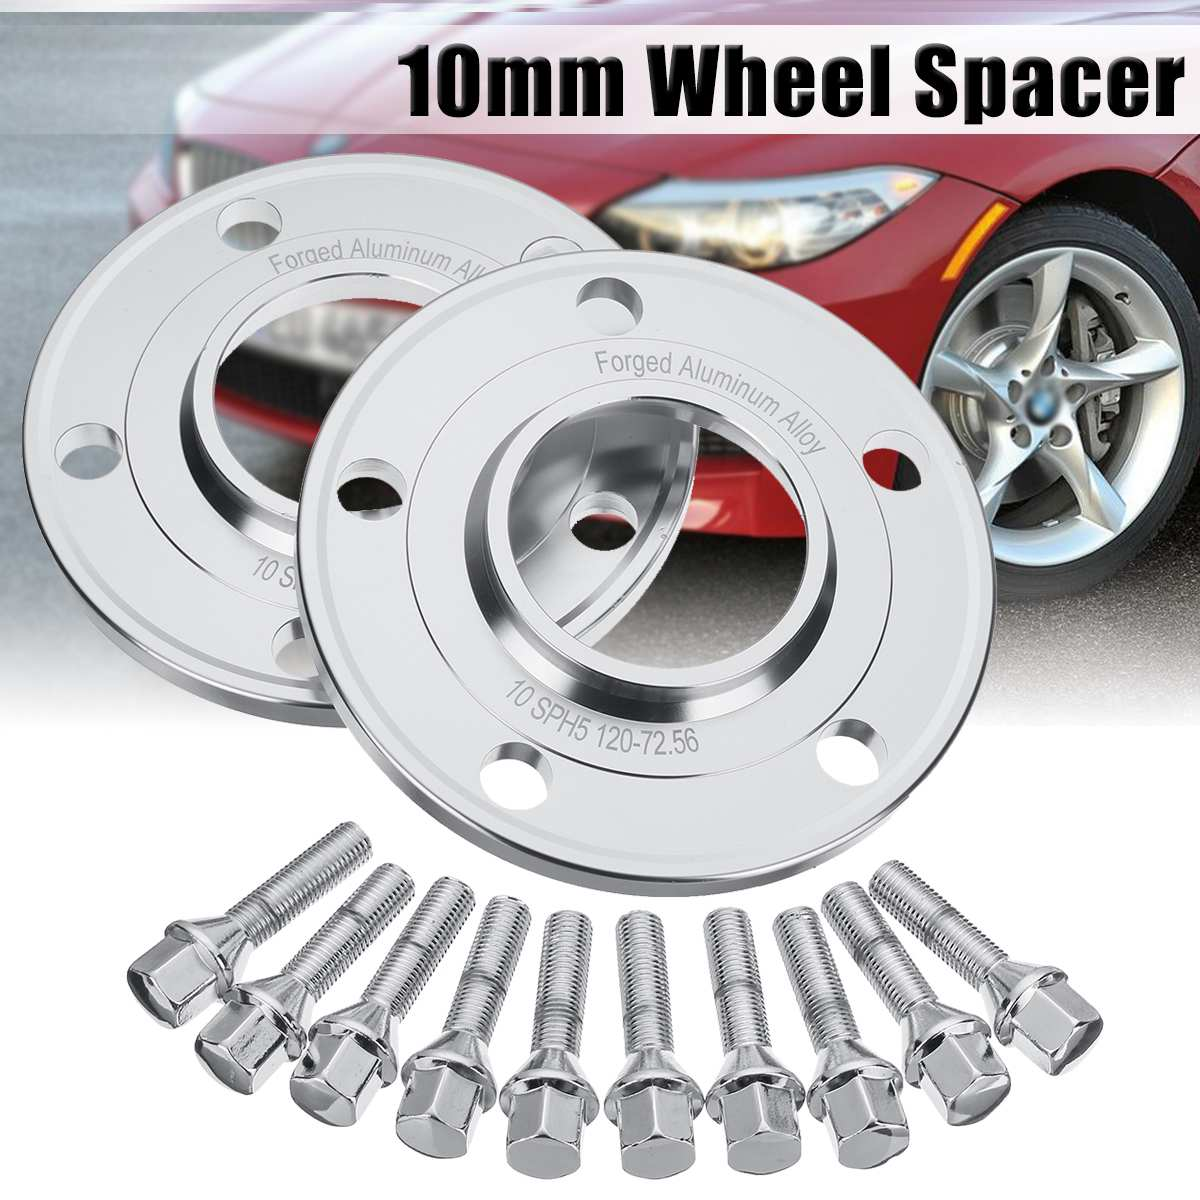 Automobilia Clothing Hats Hubcentric 15mm Alloy Wheel Spacers For Bmw X3 E83 5x120 72 6 Pair Automobilia Zsco Iq